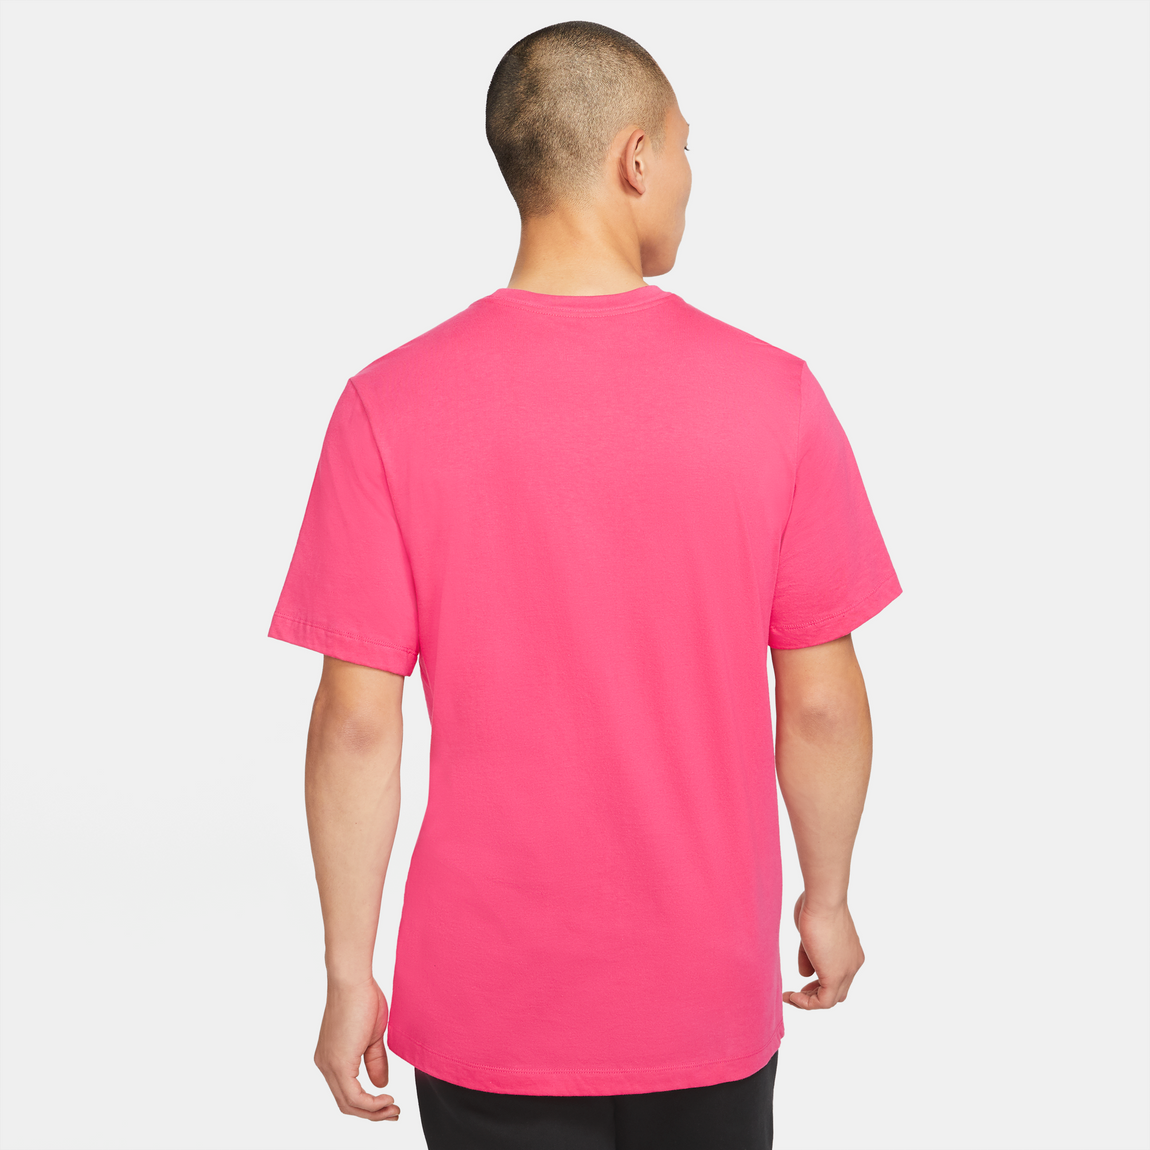 Jordan Winter Utility Tee (Watermelon) - Jordan Winter Utility Tee (Watermelon) -